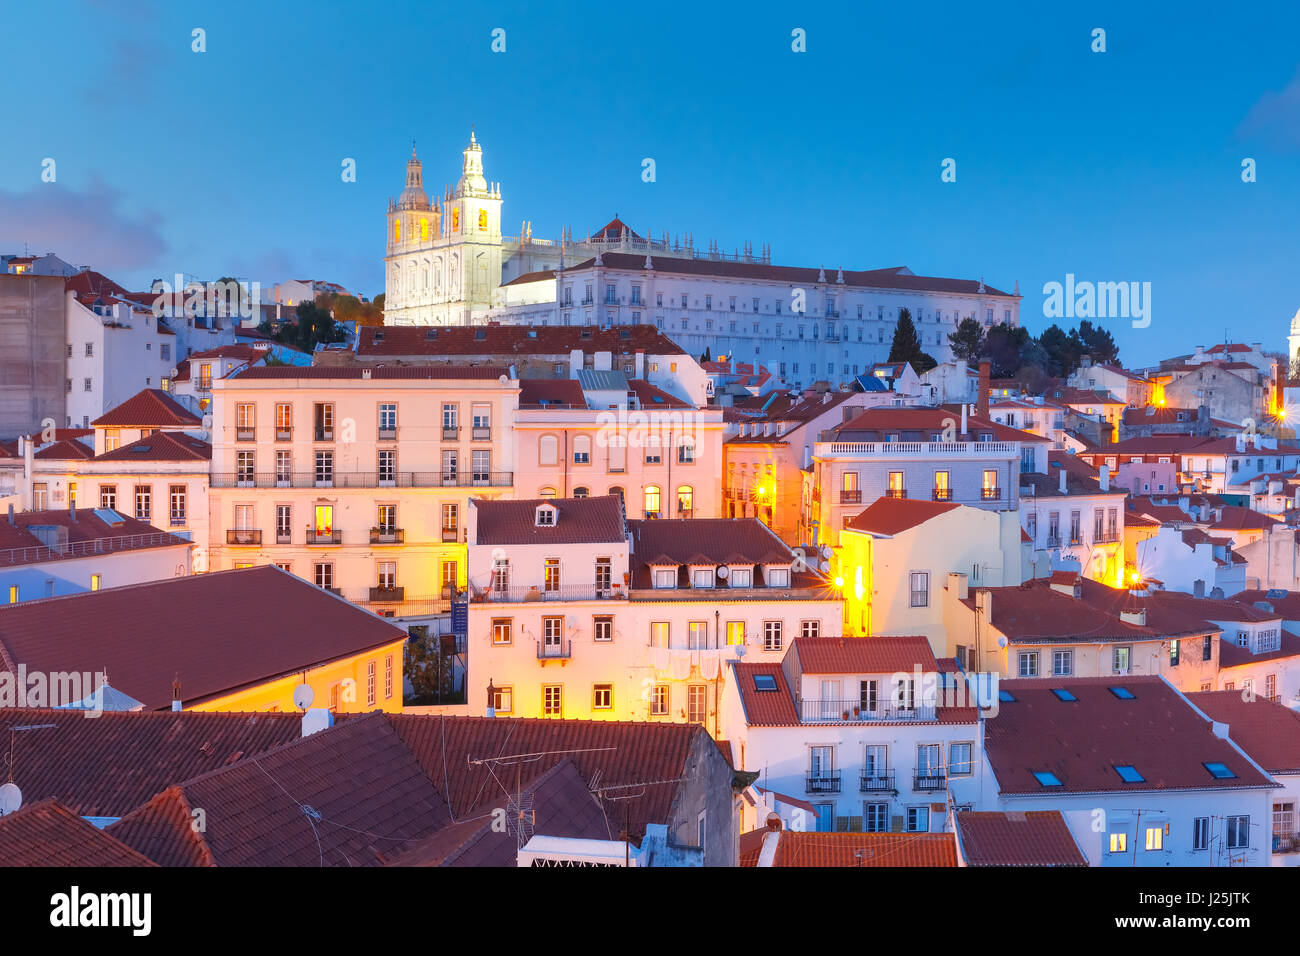 Alfama at night, Lisbon, Portugal Stock Photo